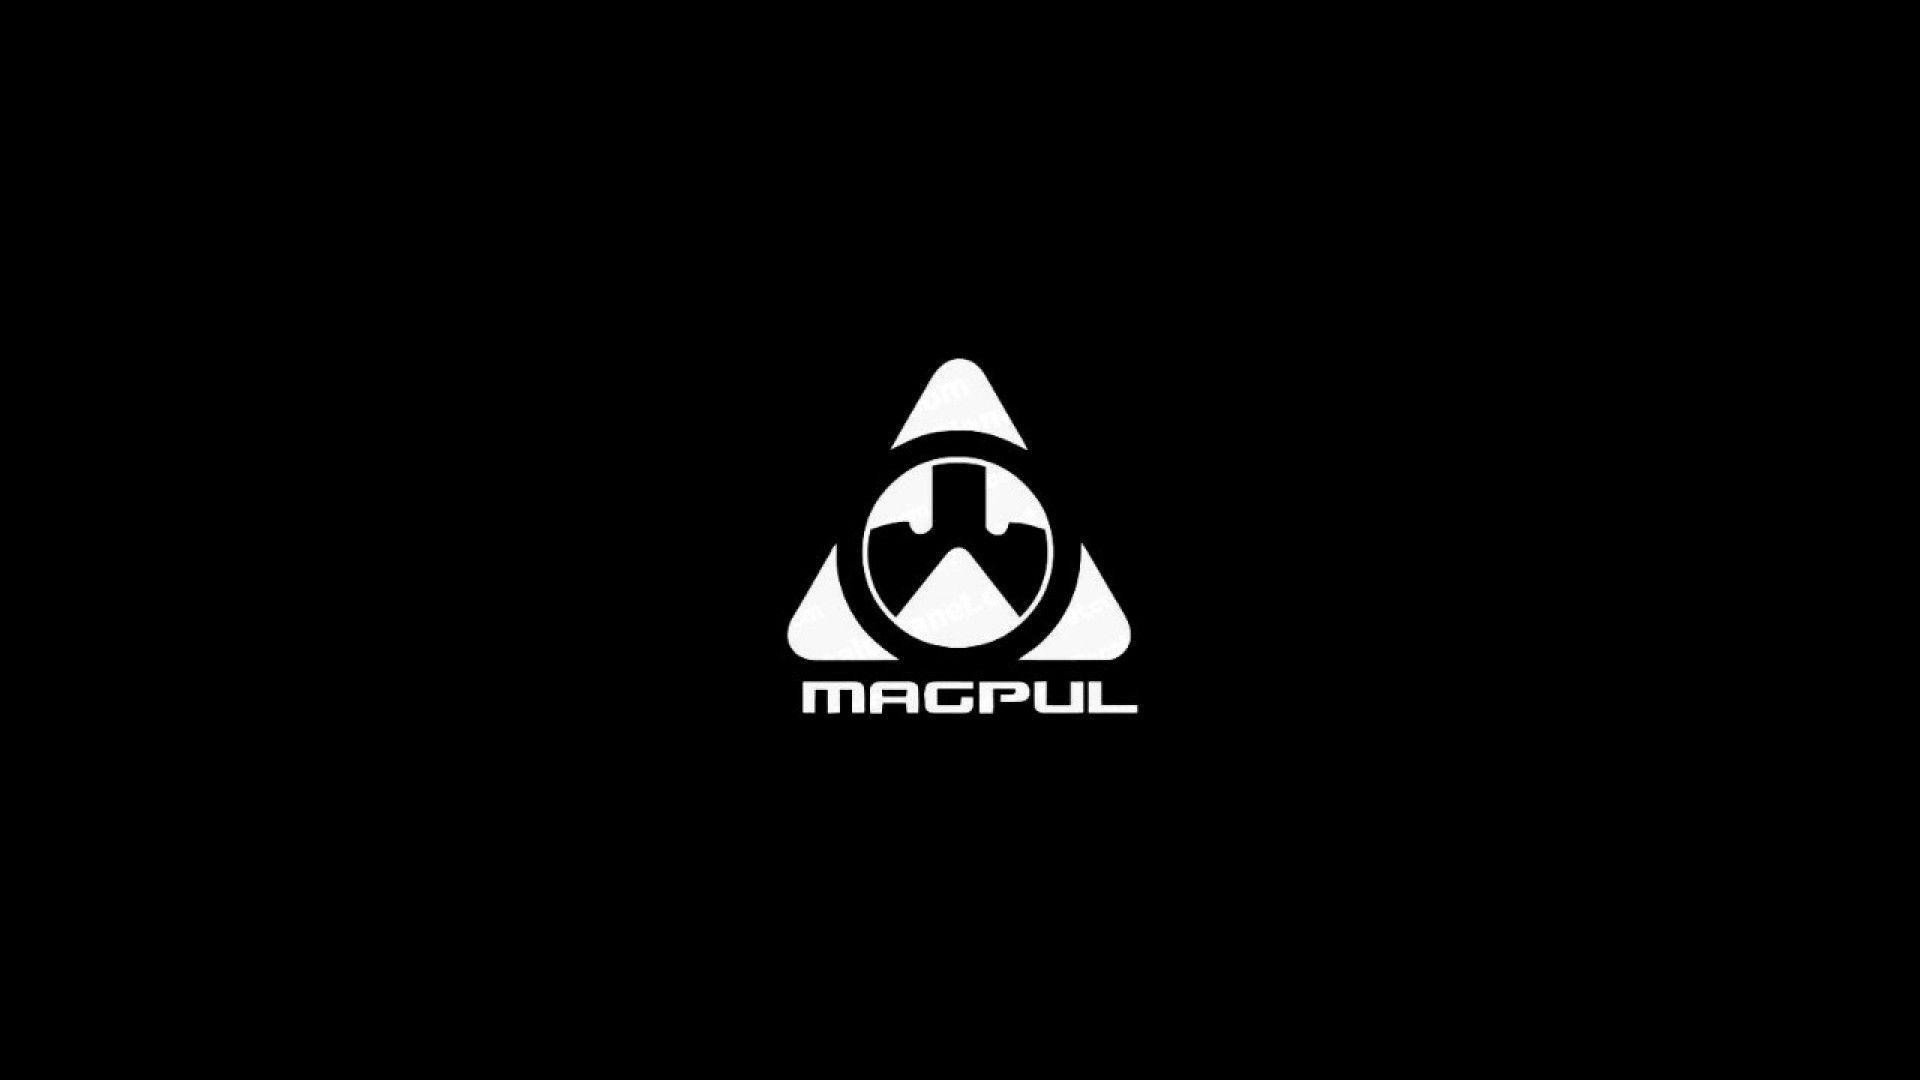 1920x1080 Magpul Iphone Wallpaper Source ·  Wallpapers For Magpul Wallpaper